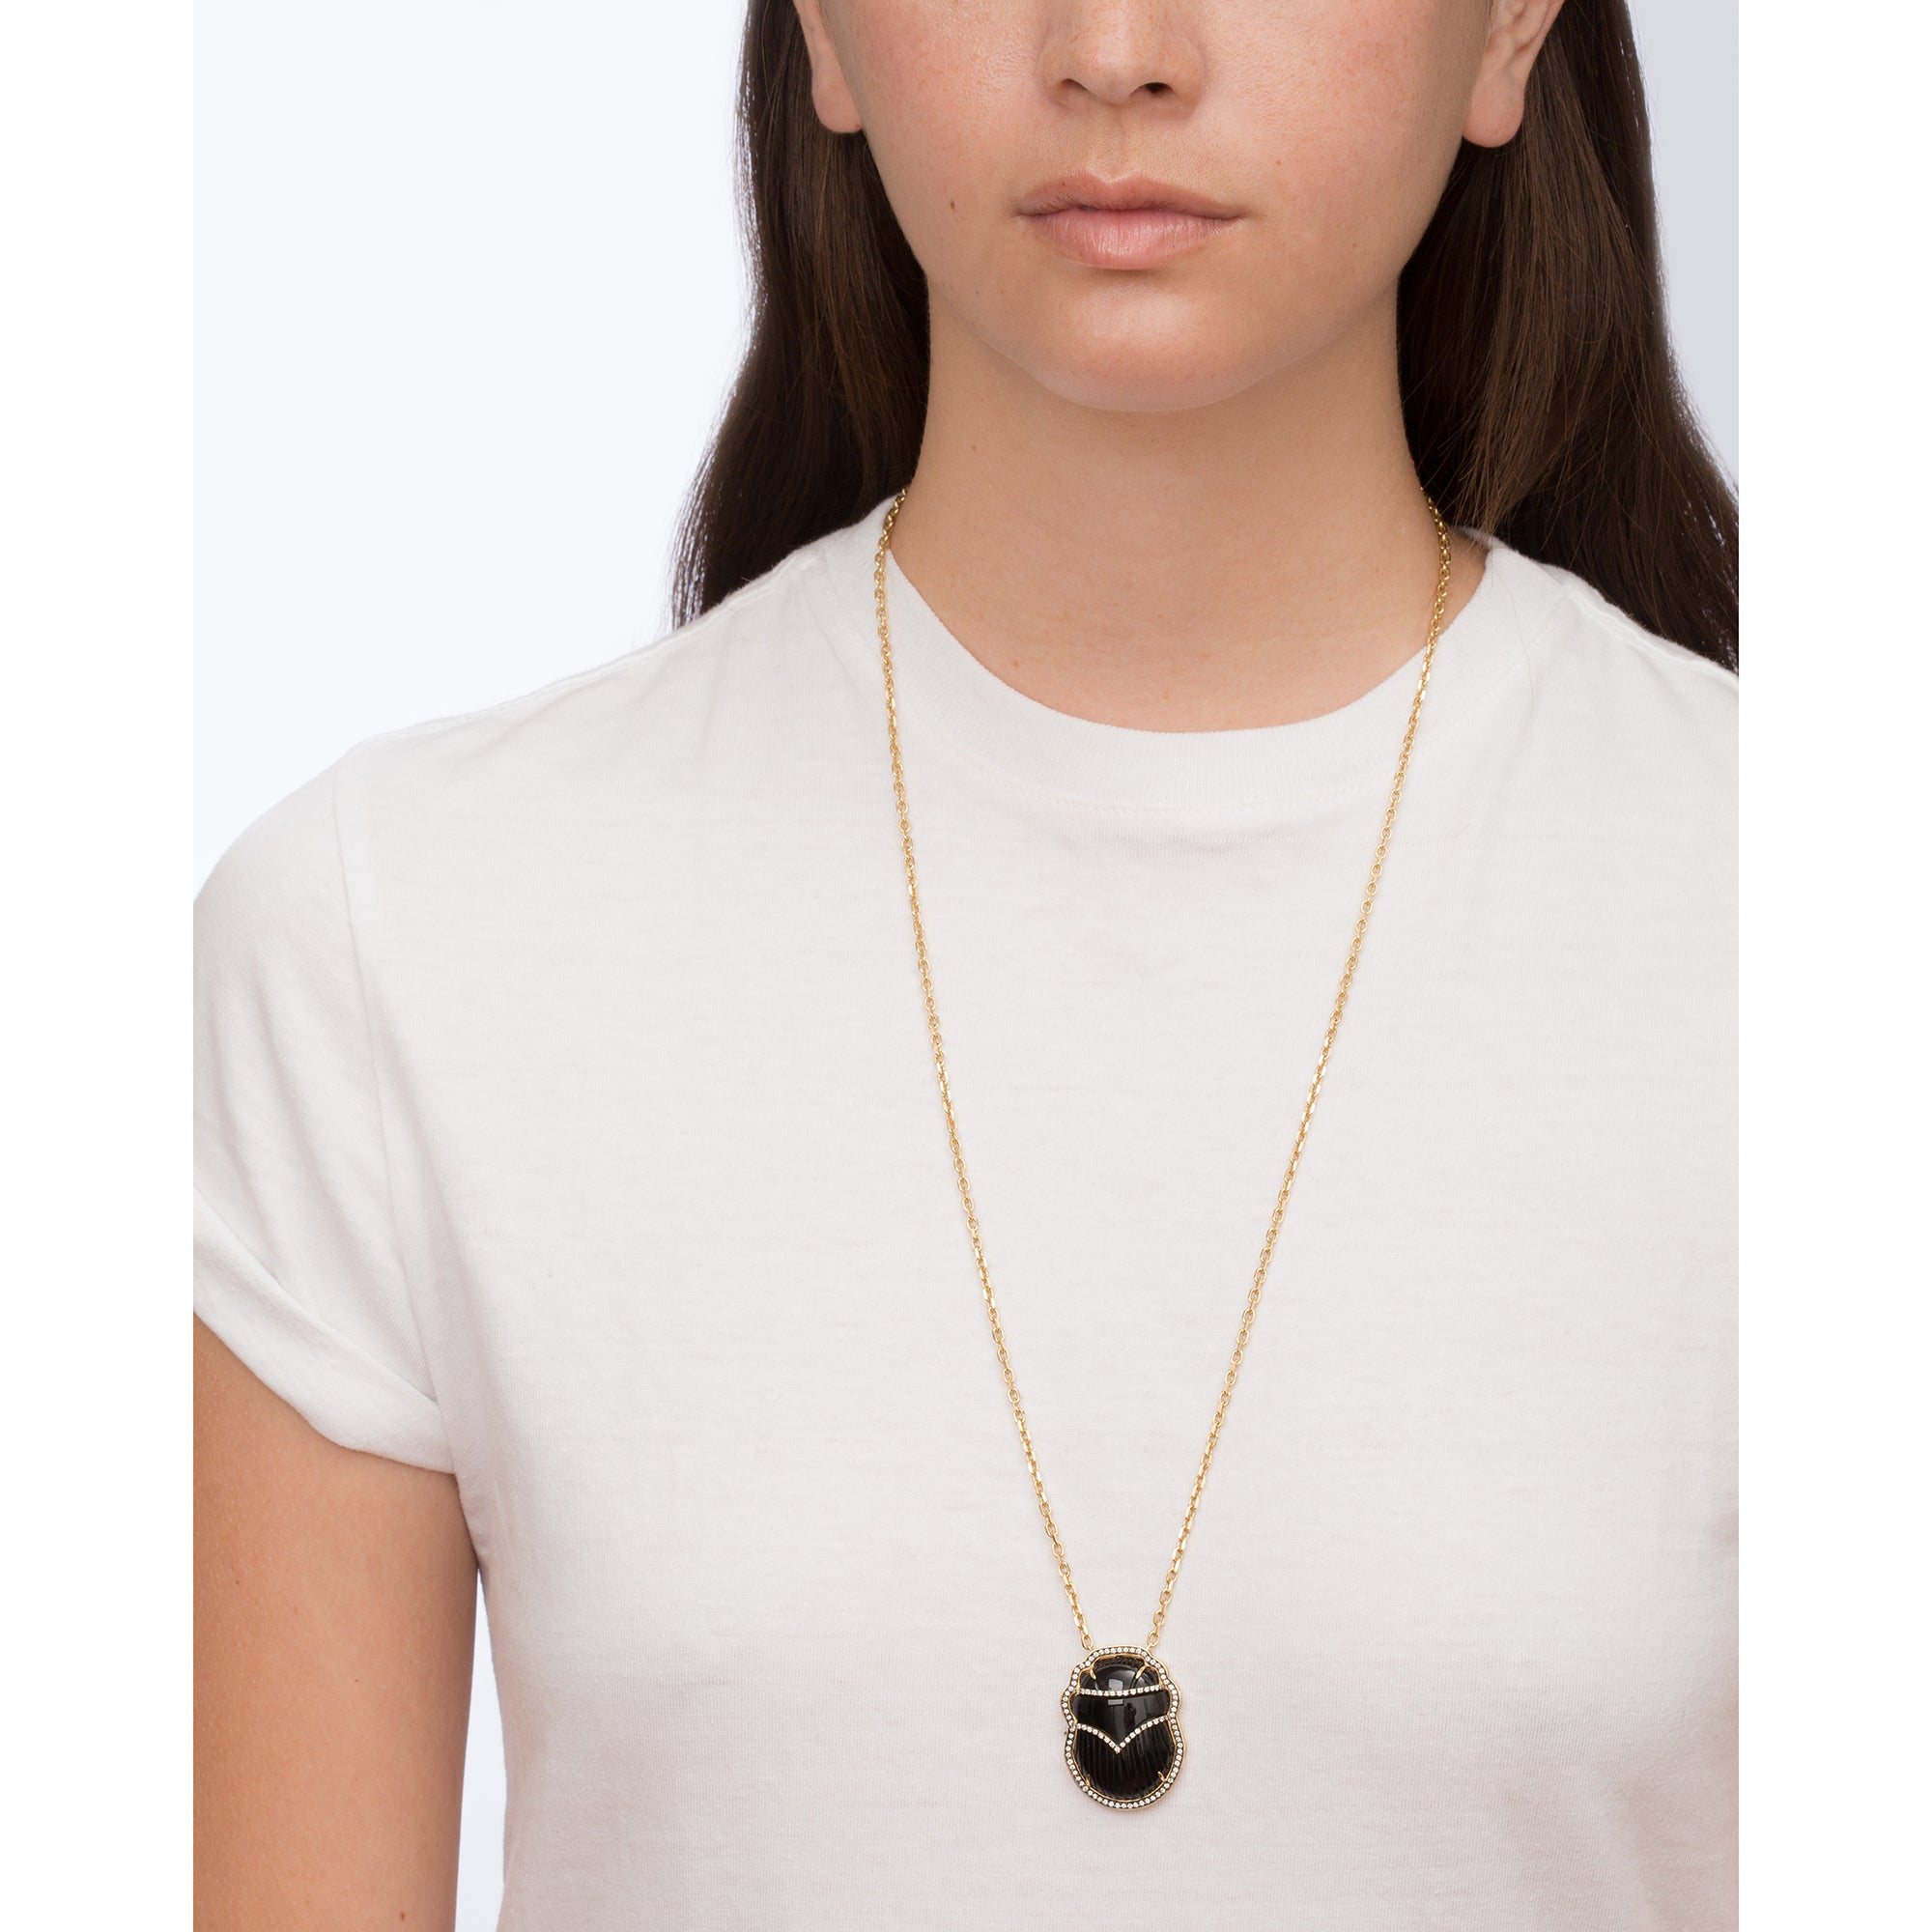 Gold Diamond Black Scarab Necklace By Silvia Furmanovich For Broken English Jewlery